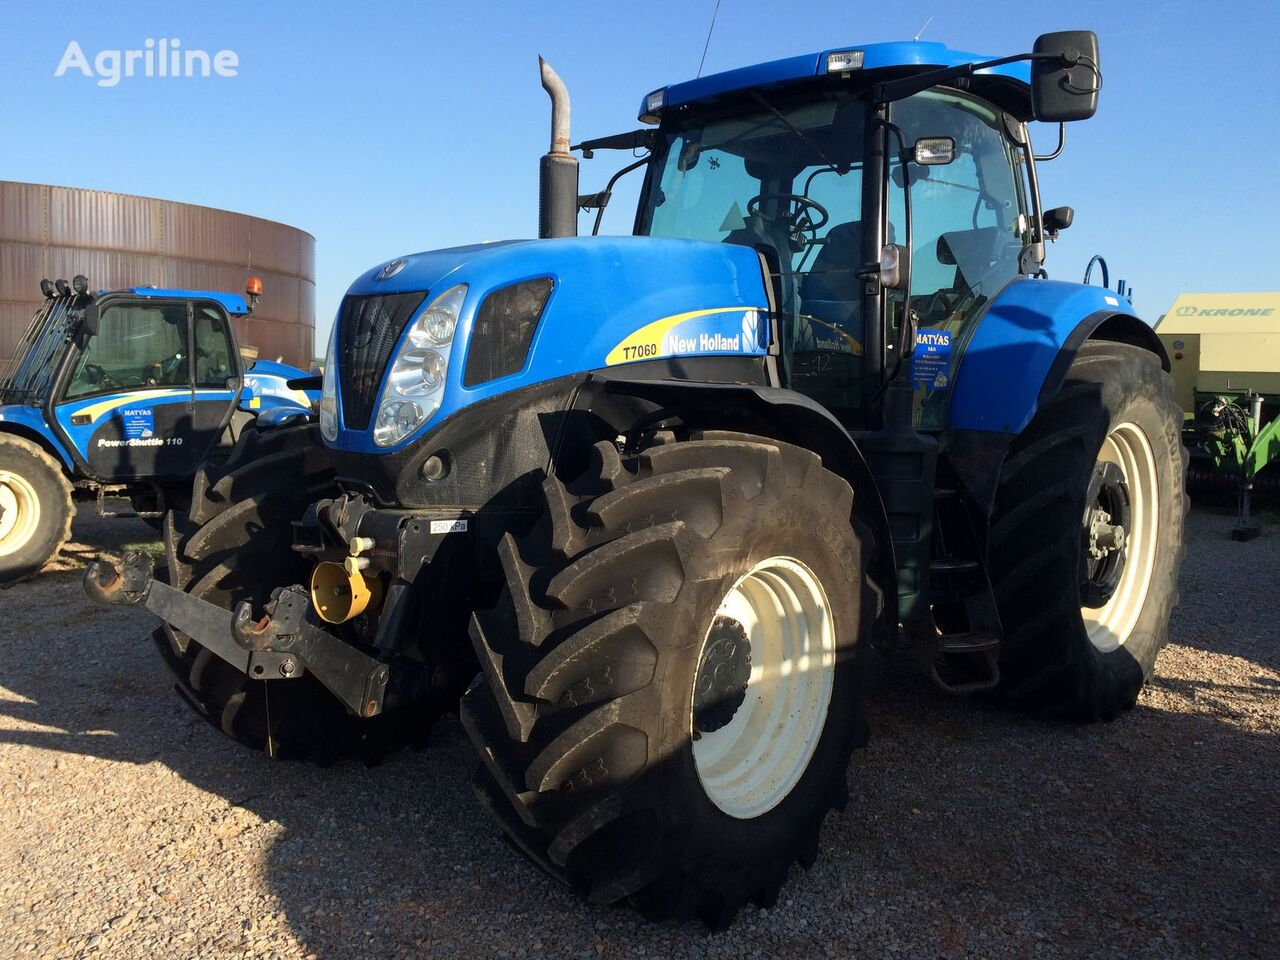 kolesový traktor NEW HOLLAND T 7060